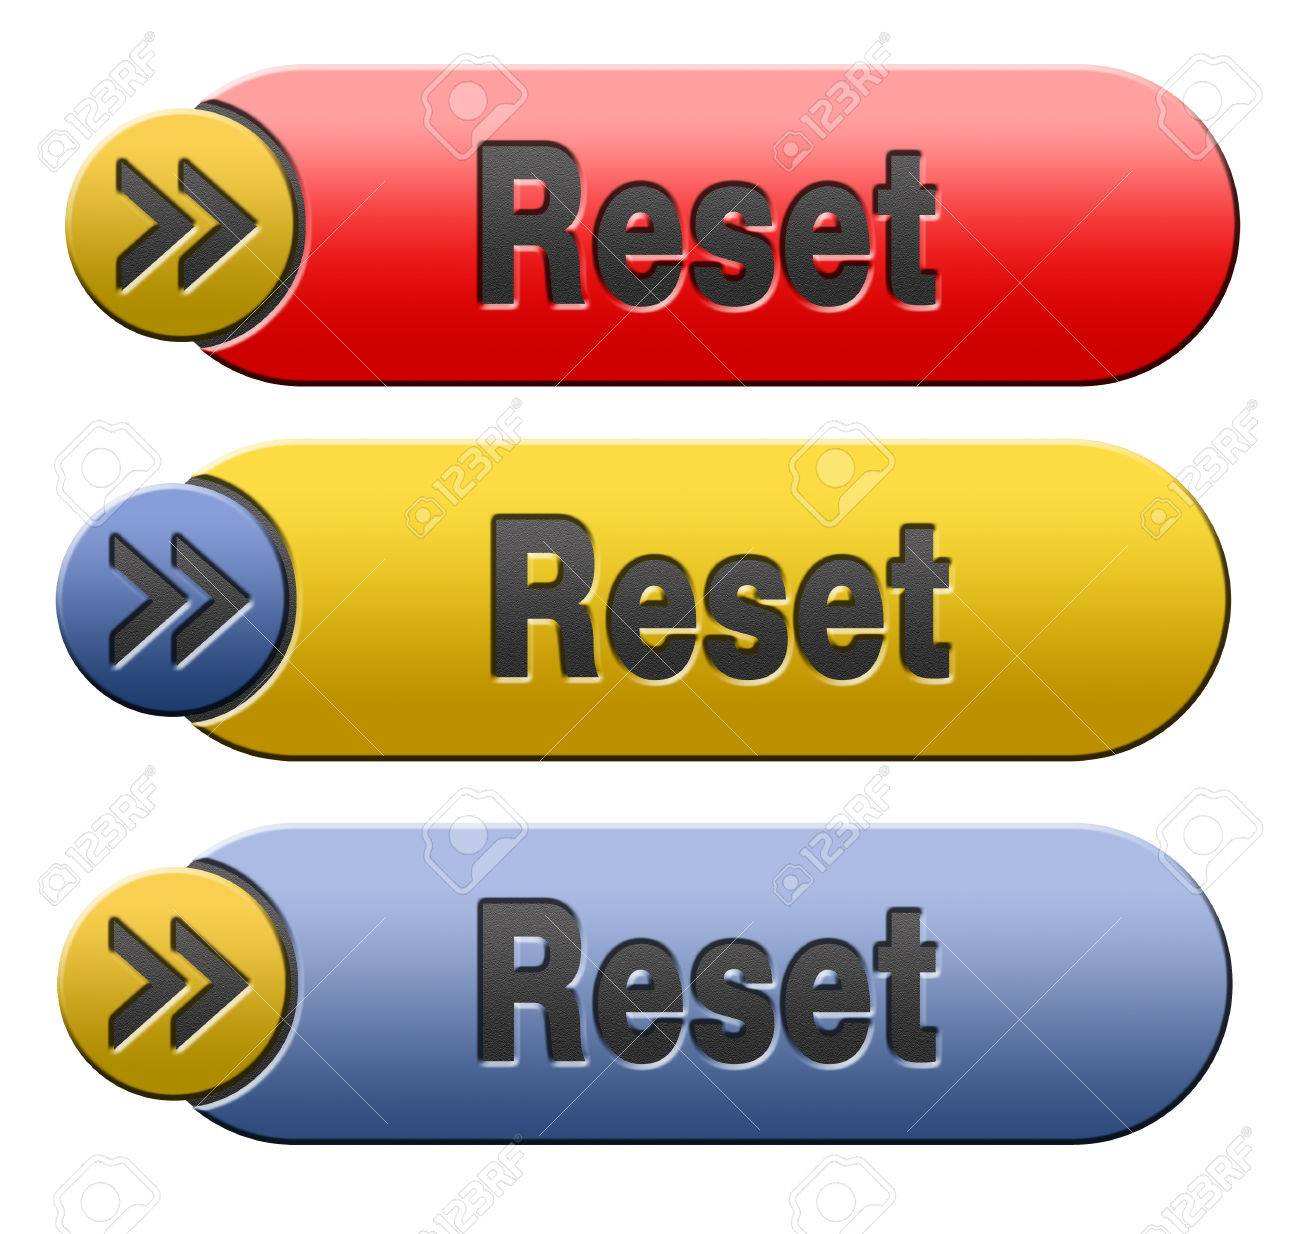 Reset button start again or refresh icon refresh or redo sign Stock Photo 23499897